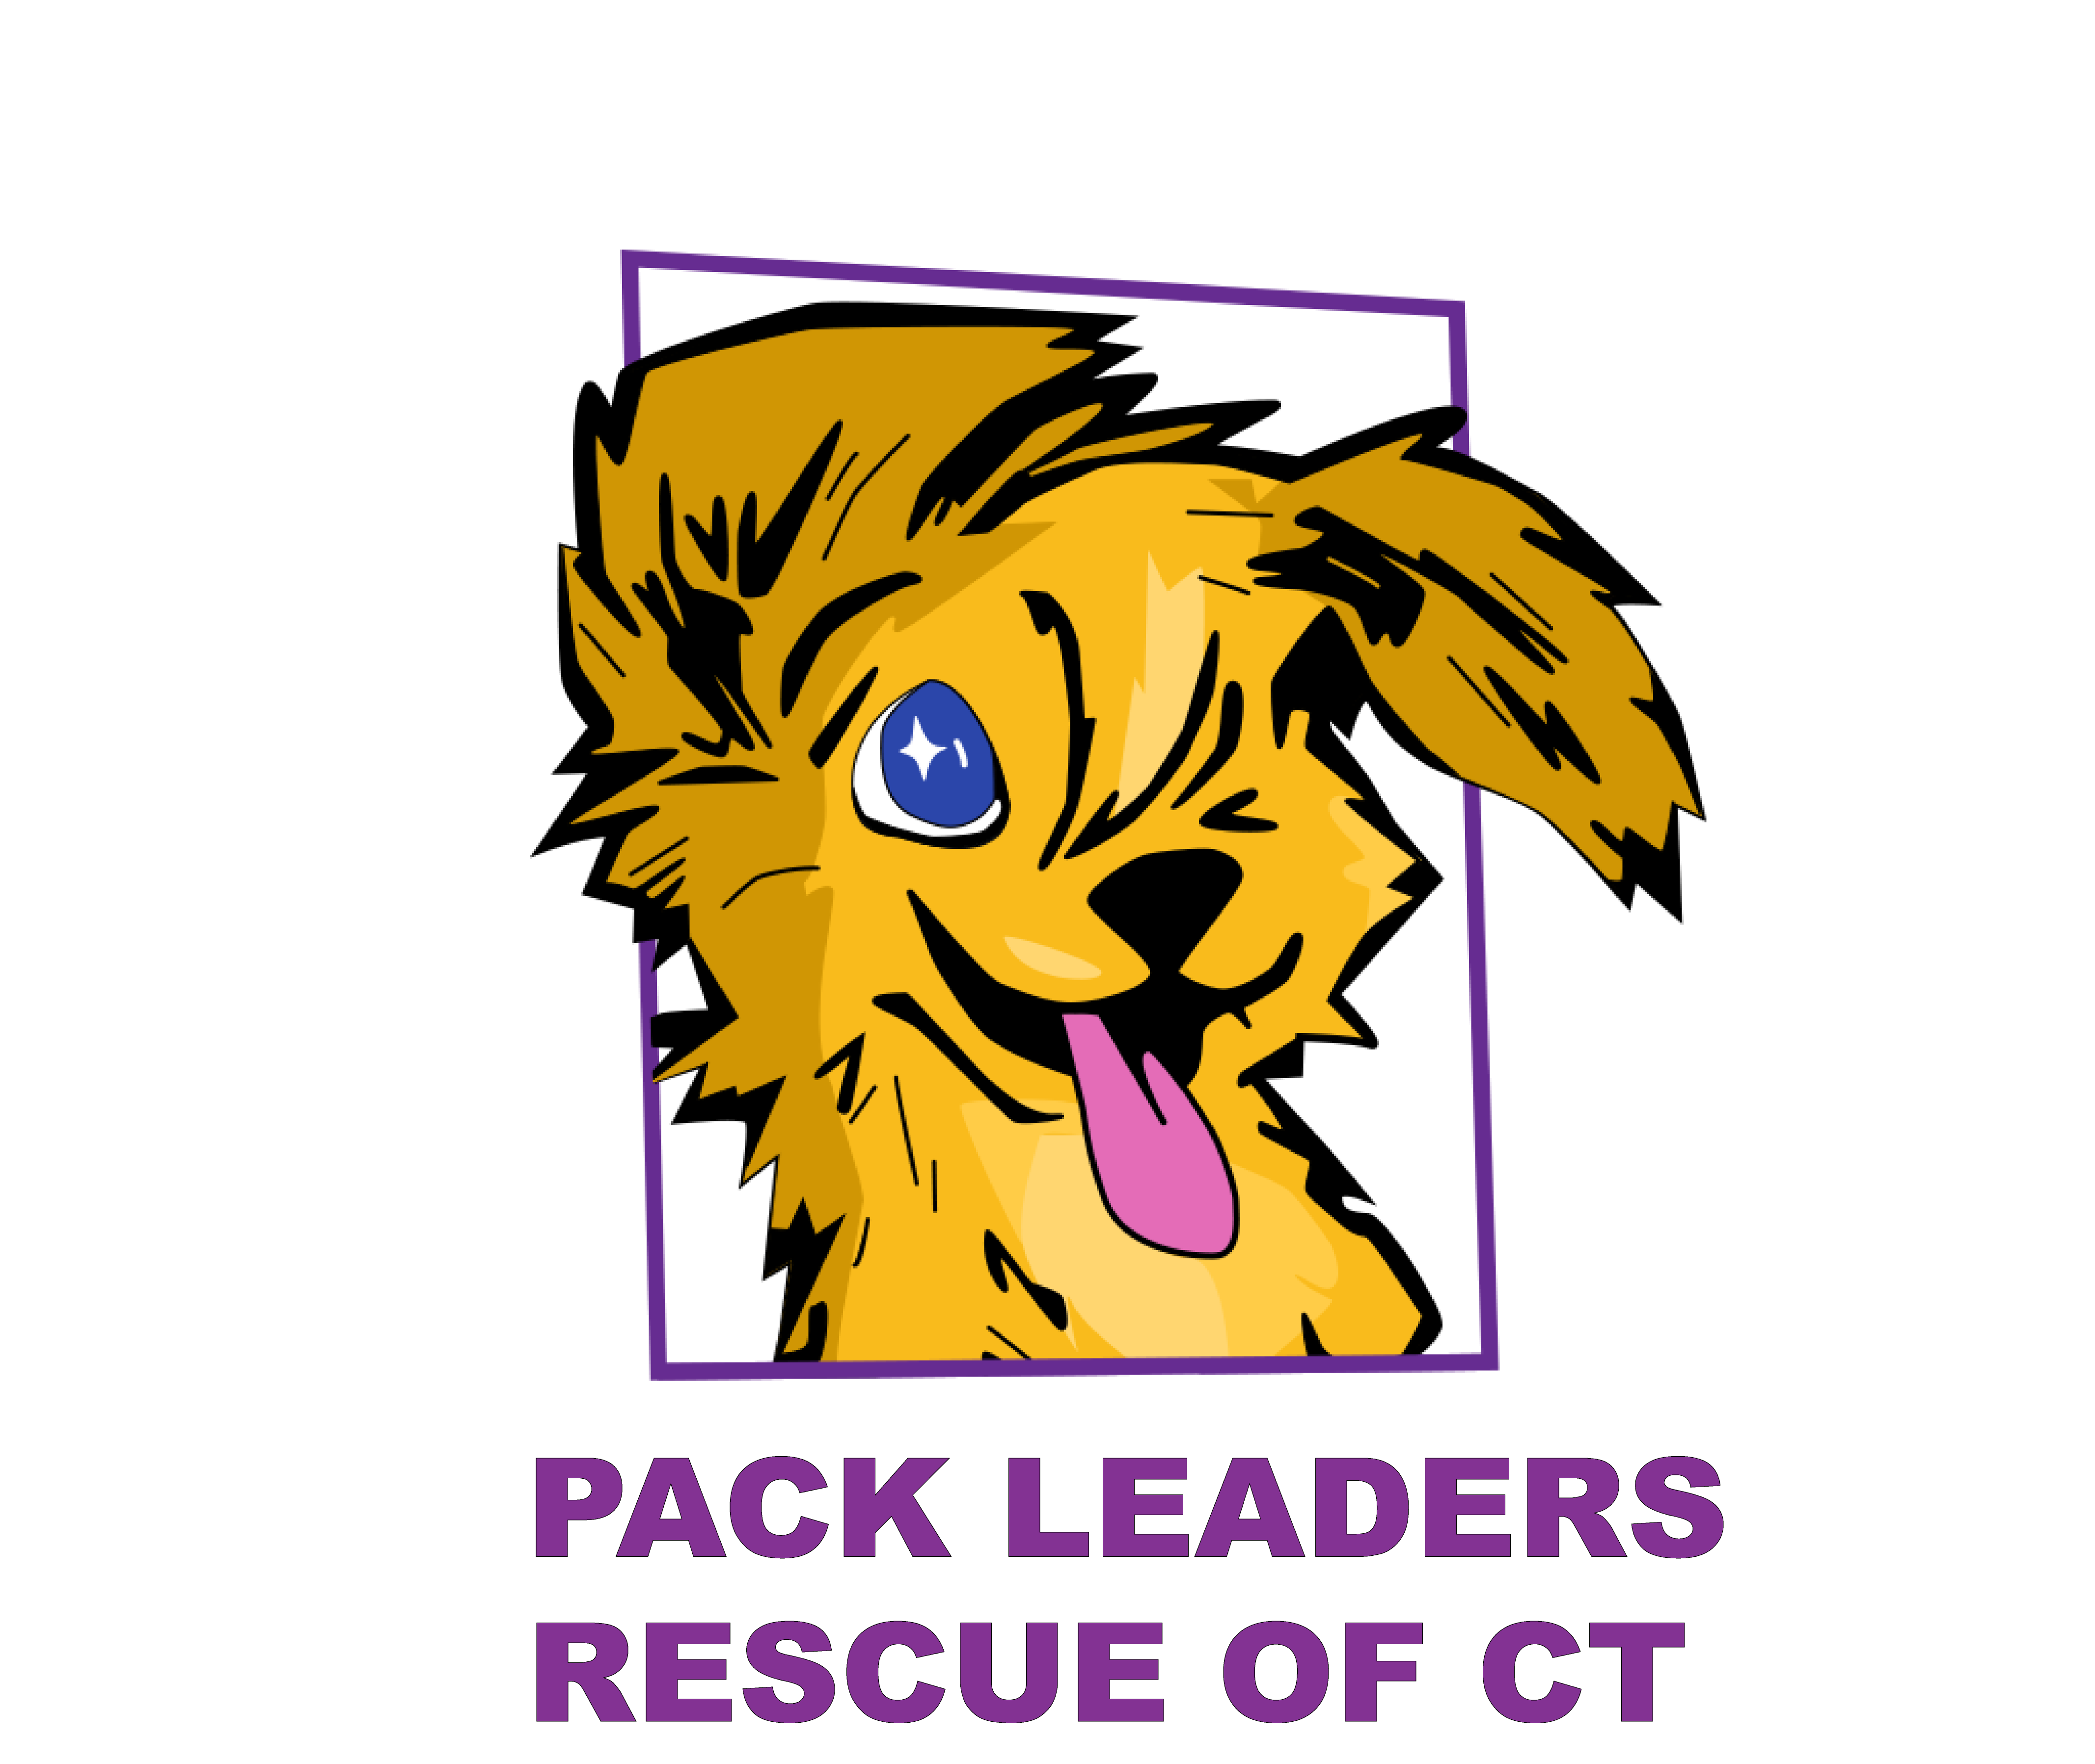 Pack Leaders Rescue of CT